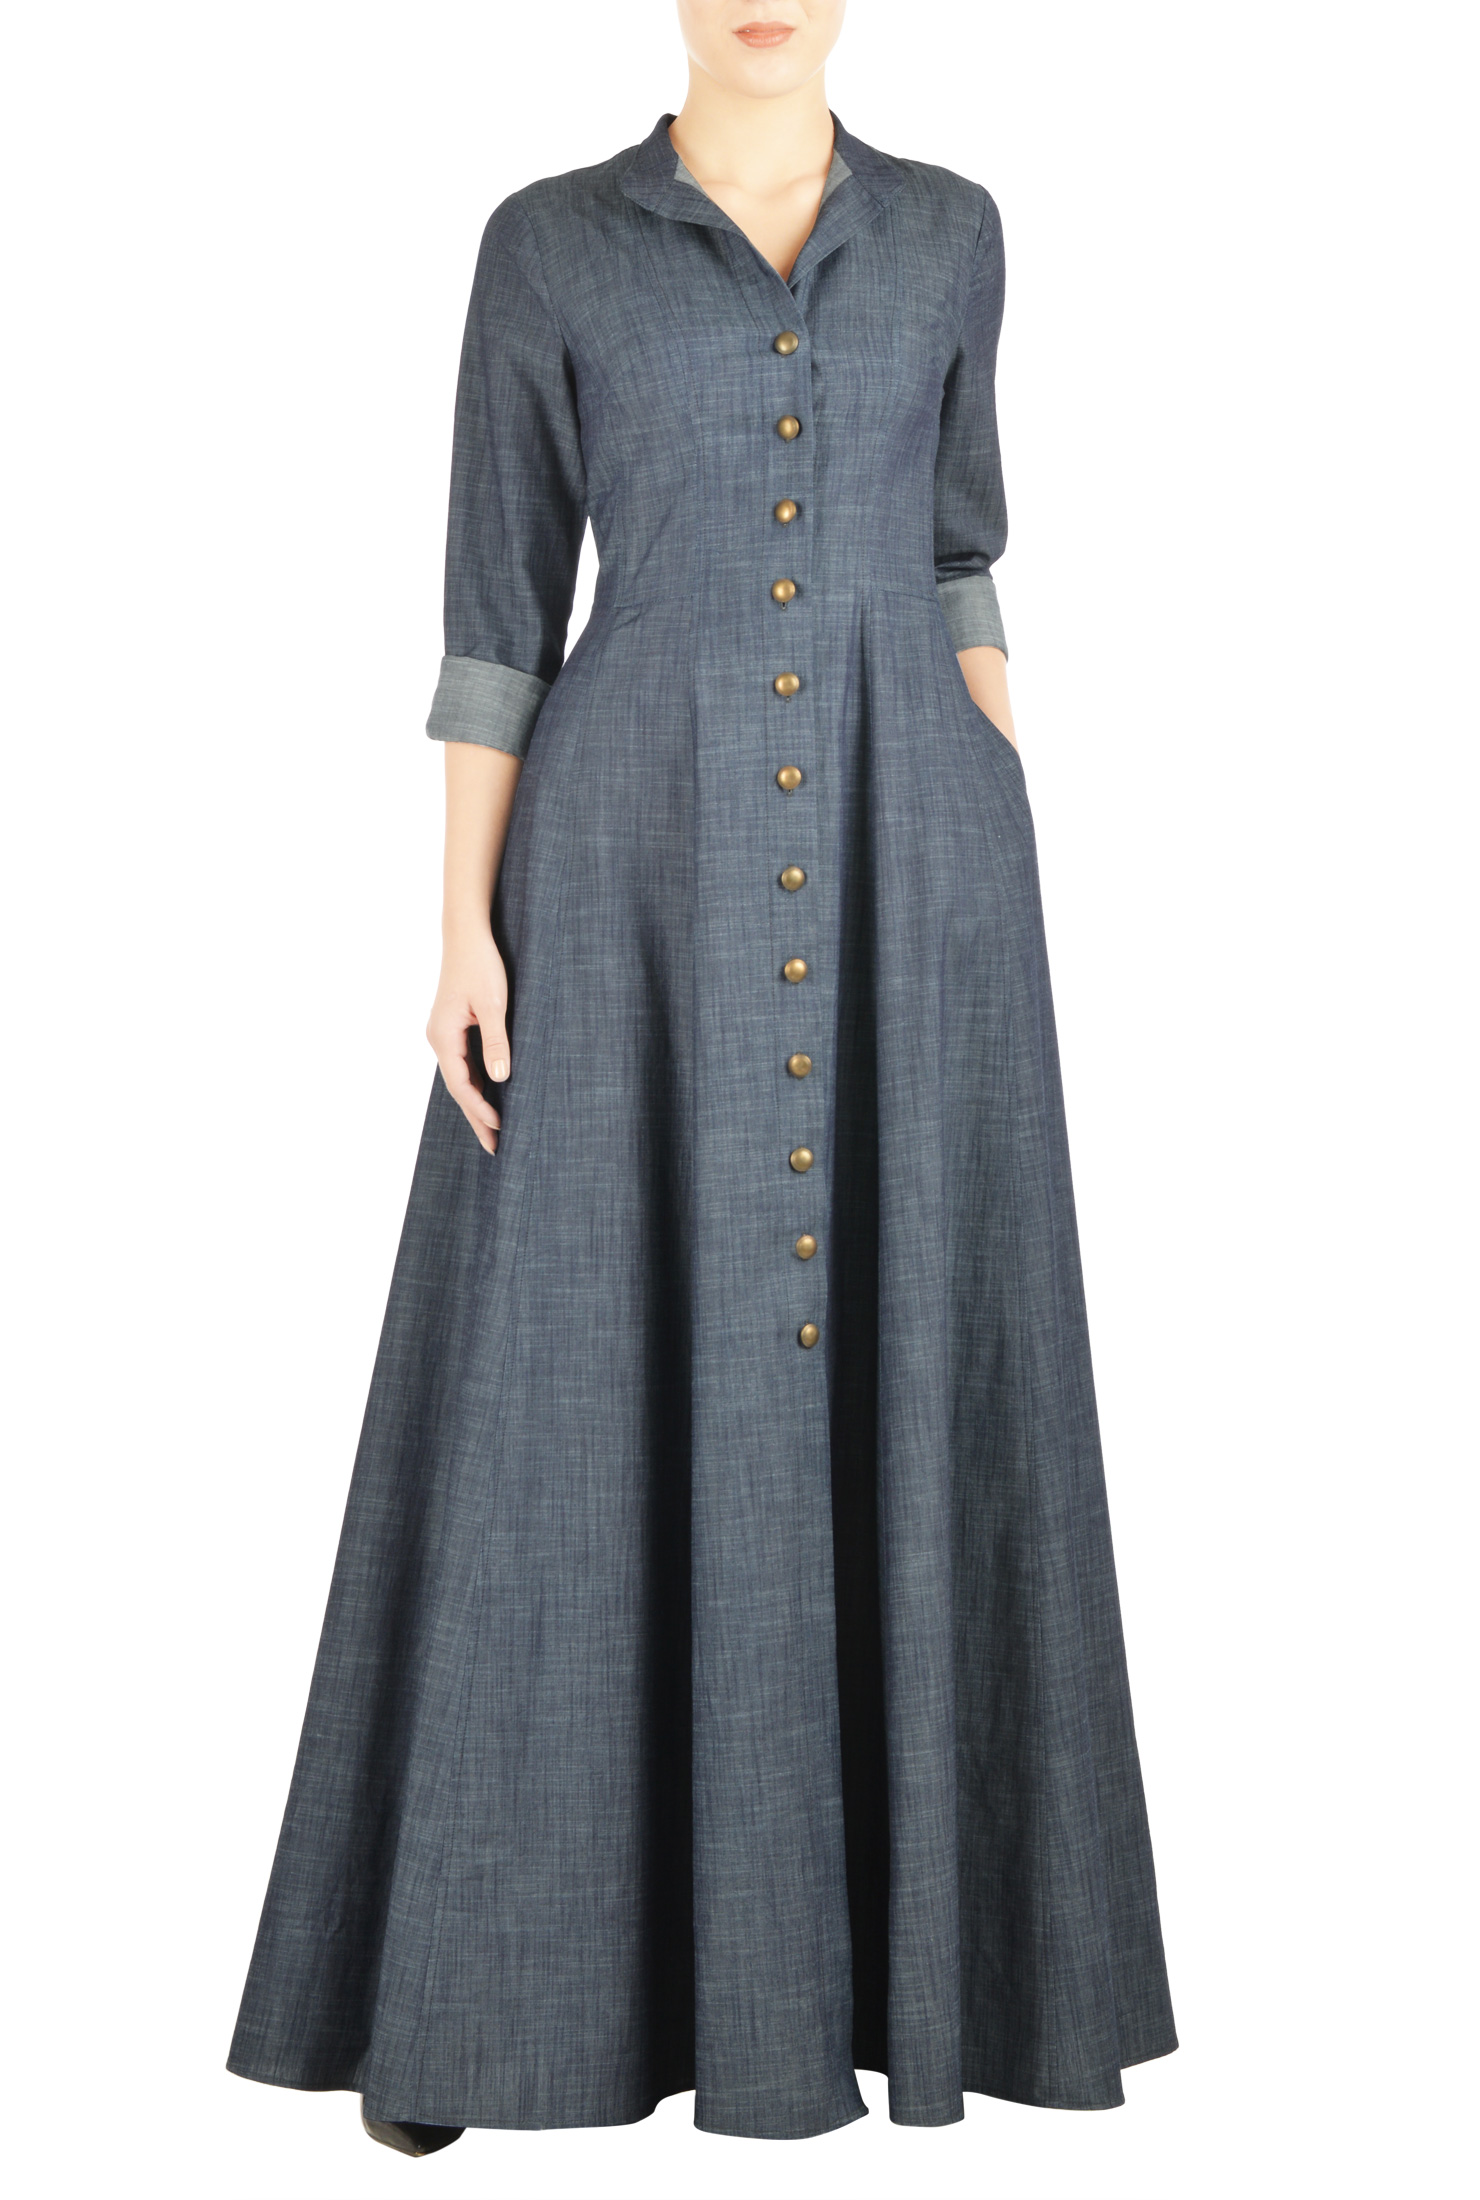 #fall2016 chambray maxi shirt dress